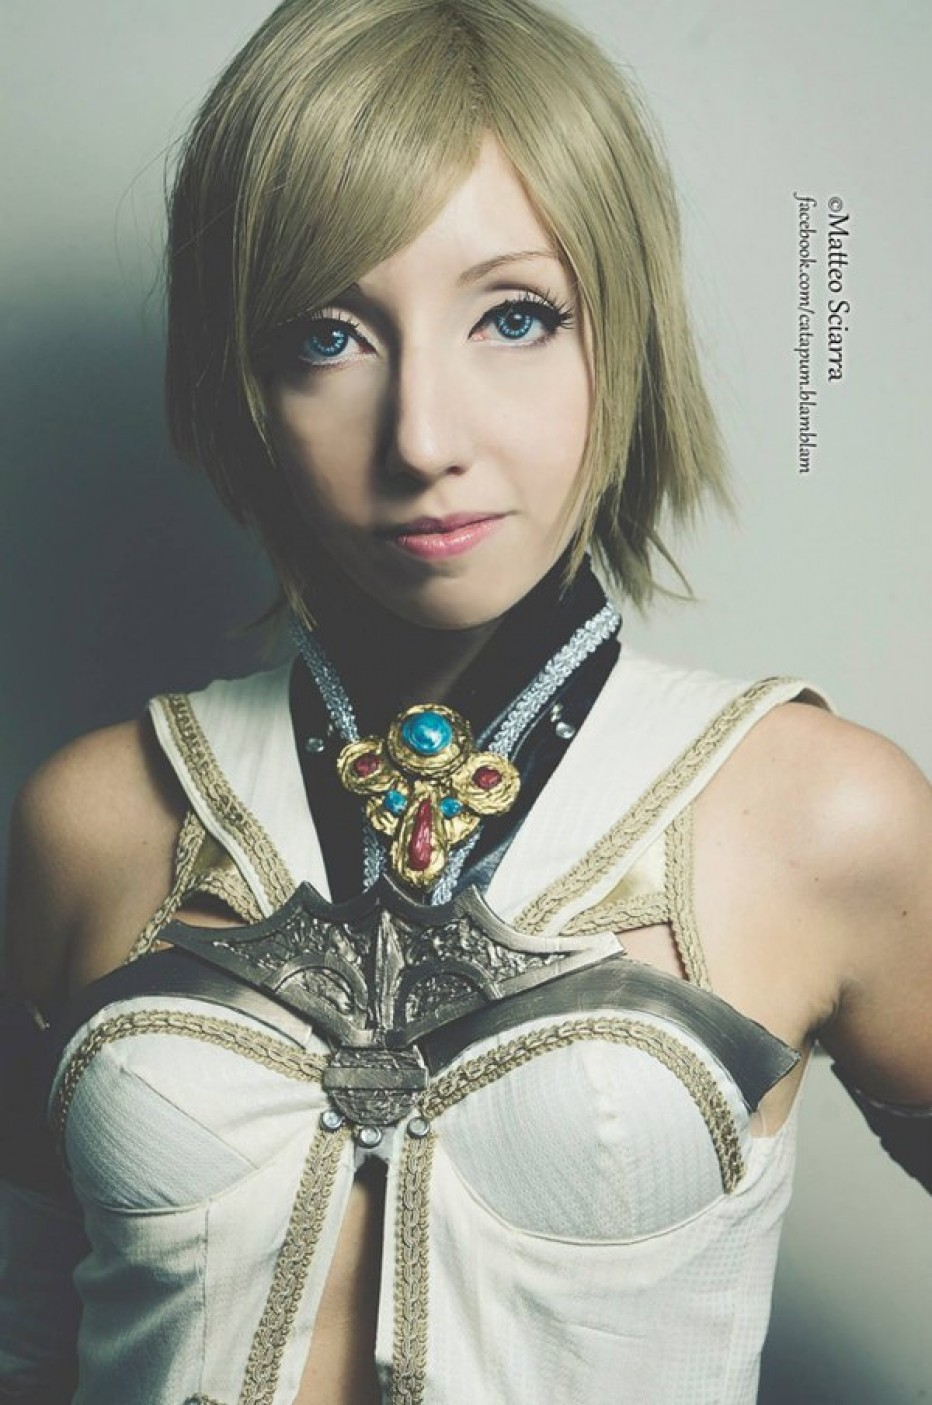 Final-Fantasy-XII-Ashe-Cosplay-Gamers-Heroes-5.jpg